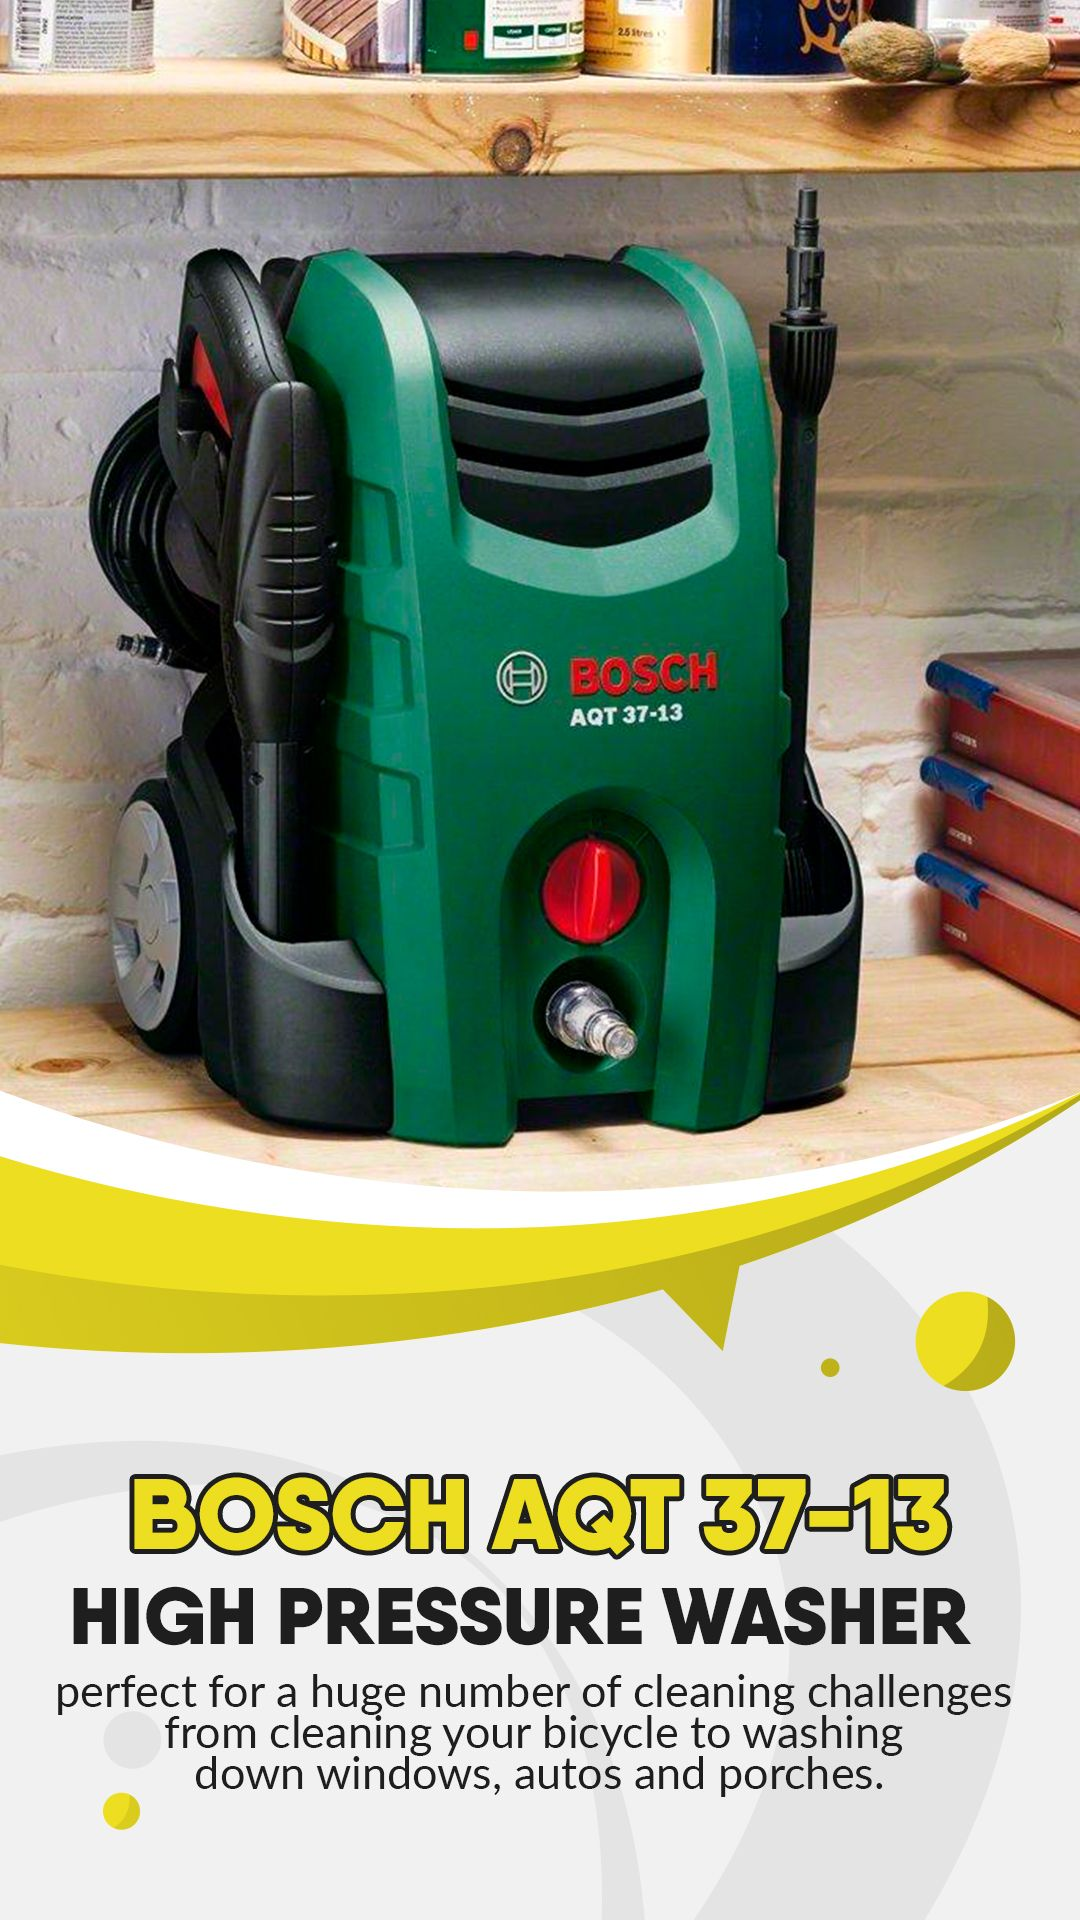 Bosch Aqt 37 13 High Pressure Washer The Total Cleaning Solution For Windows Bikes And Cars Review In 2020 Best Pressure Washer Pressure Washer Washer